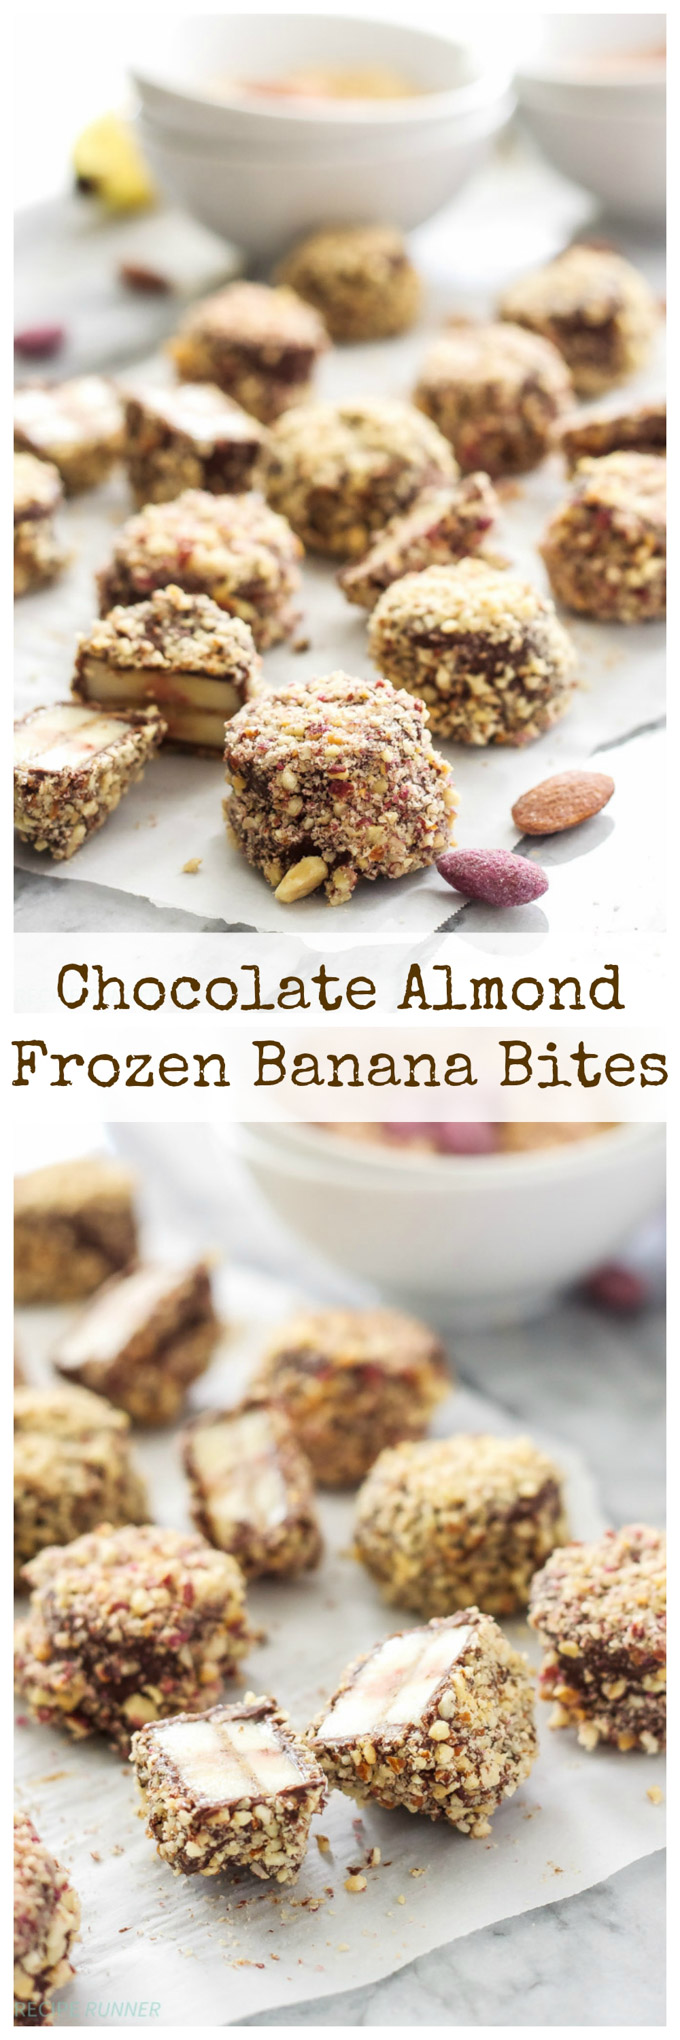 Chocolate Almond Frozen Banana Bites | Slices of banana dipped in chocolate, rolled in almonds, and frozen for the perfect snack or dessert!